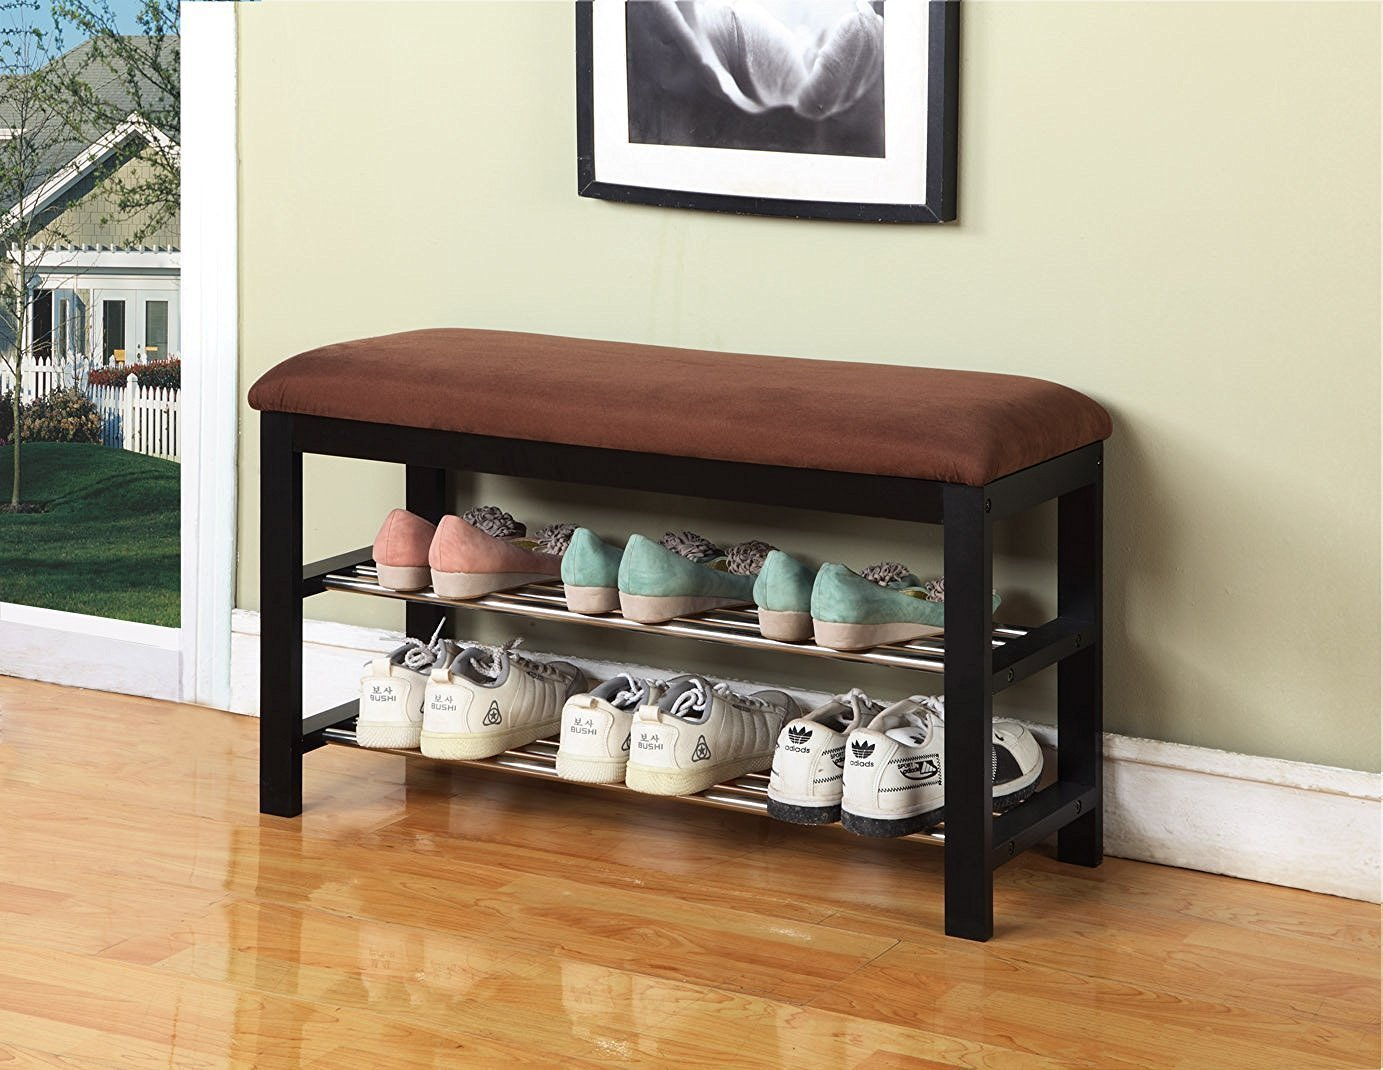 Fantastic Shoe Bench Walmart Royals Courage Shoe Rack Bench Good Gmtry Best Dining Table And Chair Ideas Images Gmtryco